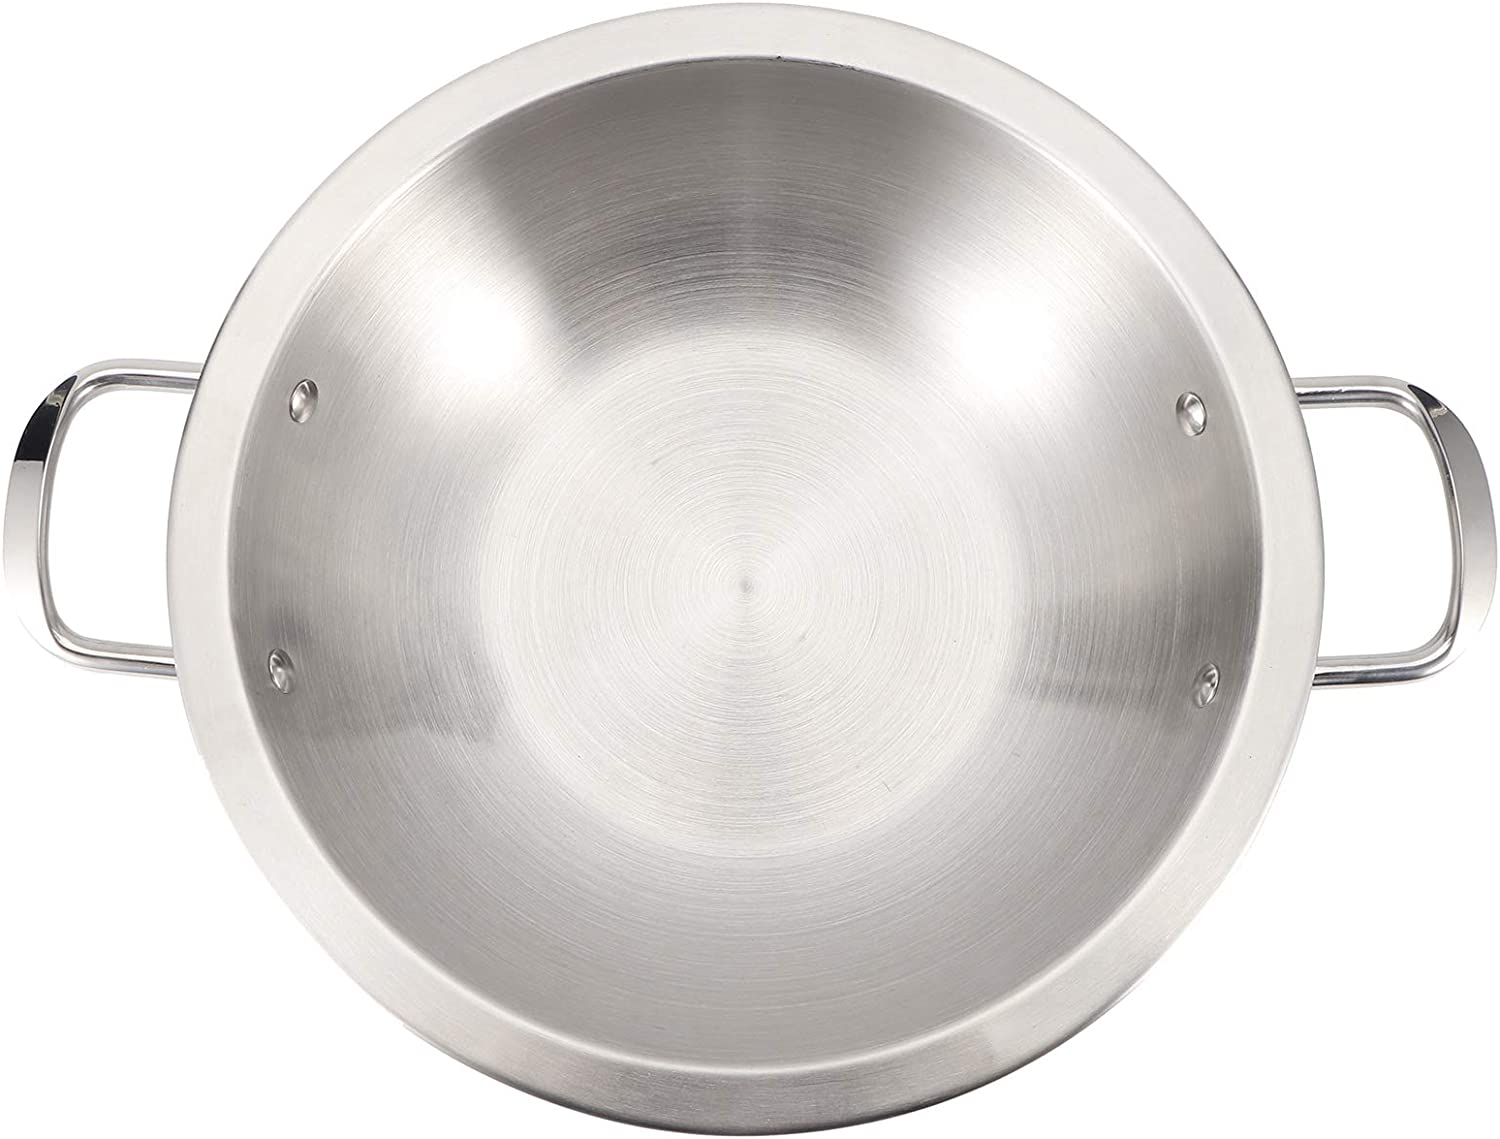 Stainless Steel Pan, Curved Hot Pot Wok Soup Pan Wide-side Pot Composite Bottom Pot Induction Cooker General Household Cooking General Purpose Pot